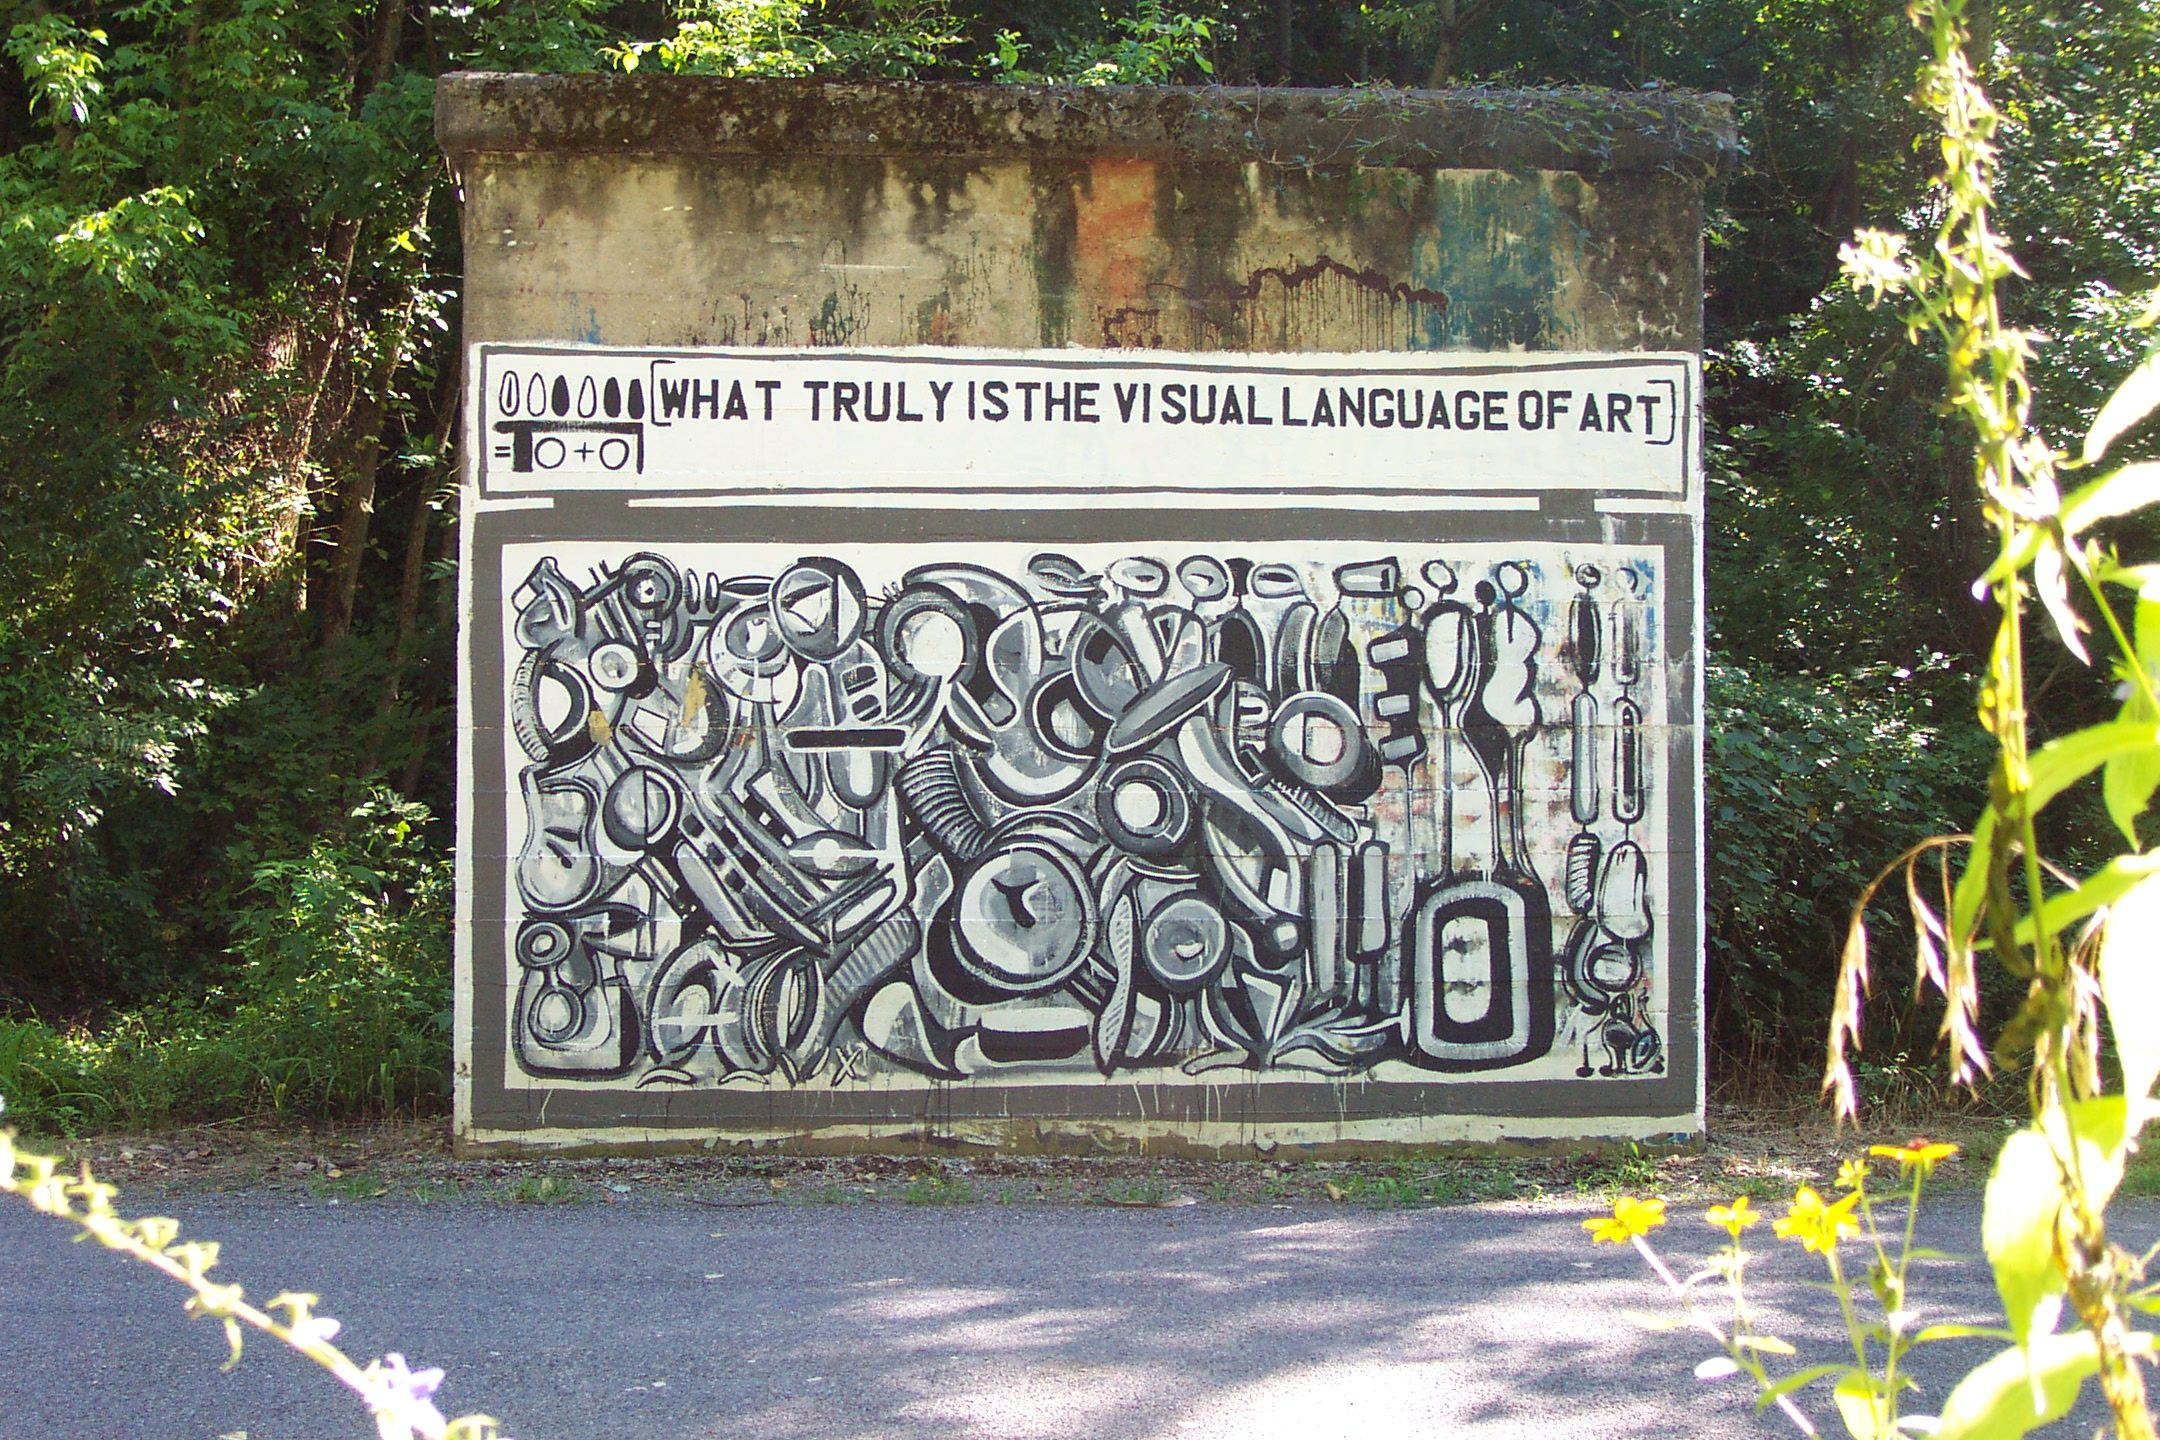 Art by John Agne on an old railroad trestle support in rural Columbia. Sadly, this work has deteriorated and suffered vandalism, but the photo lives on! Photo by Barbara Markham.